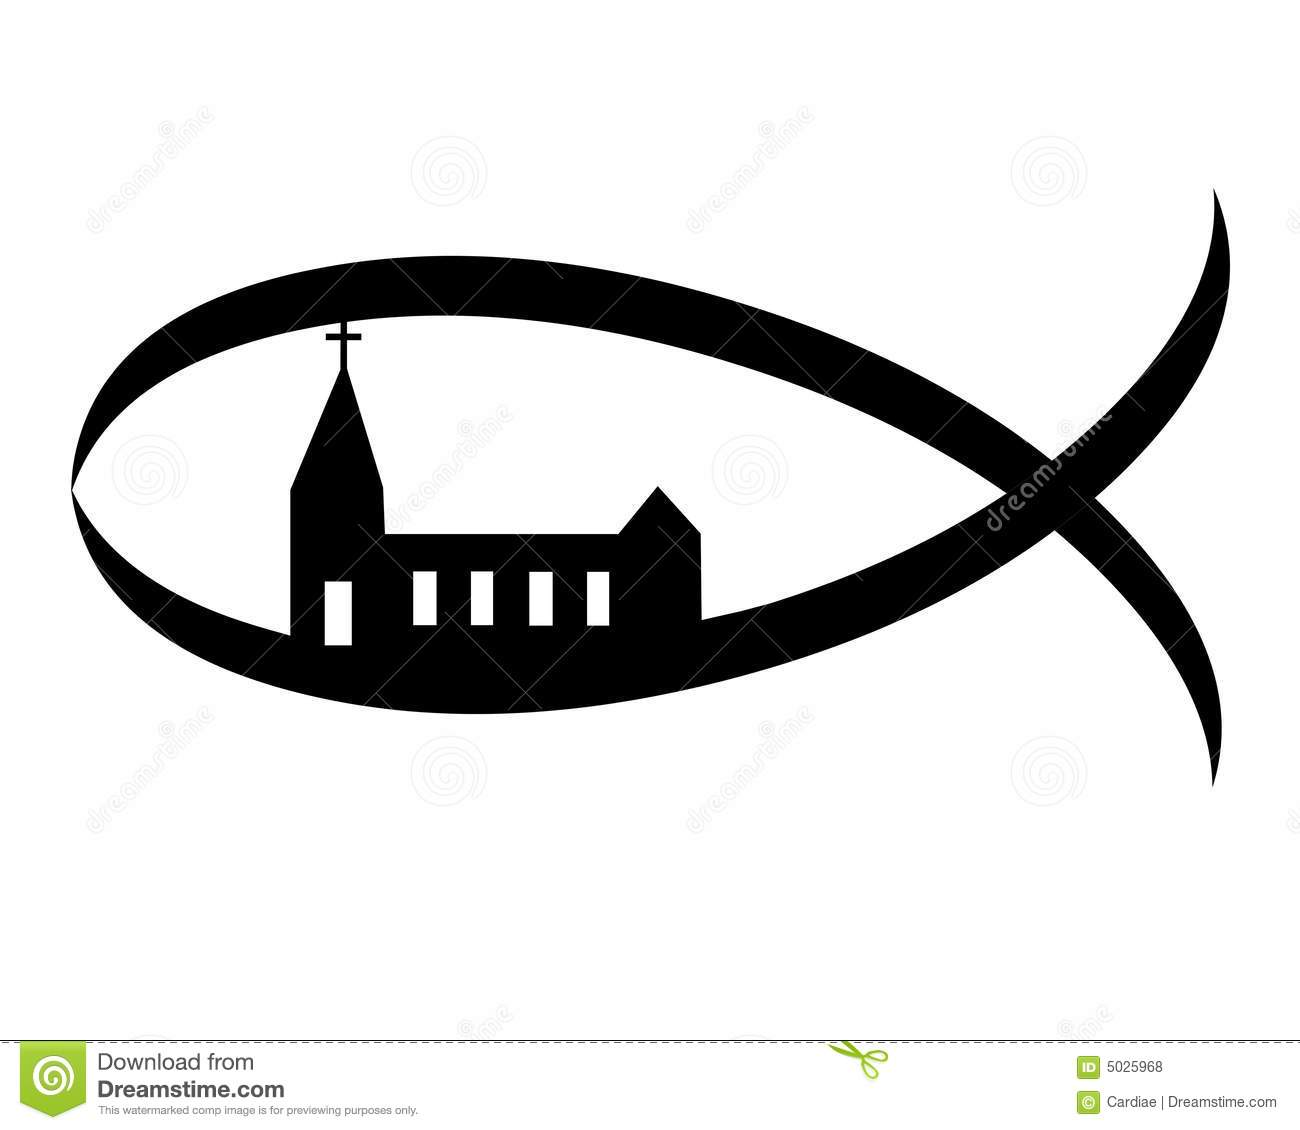 Church and other christian symbol icons set stock vector christian fish church symbol sign royalty free stock photos buycottarizona Image collections